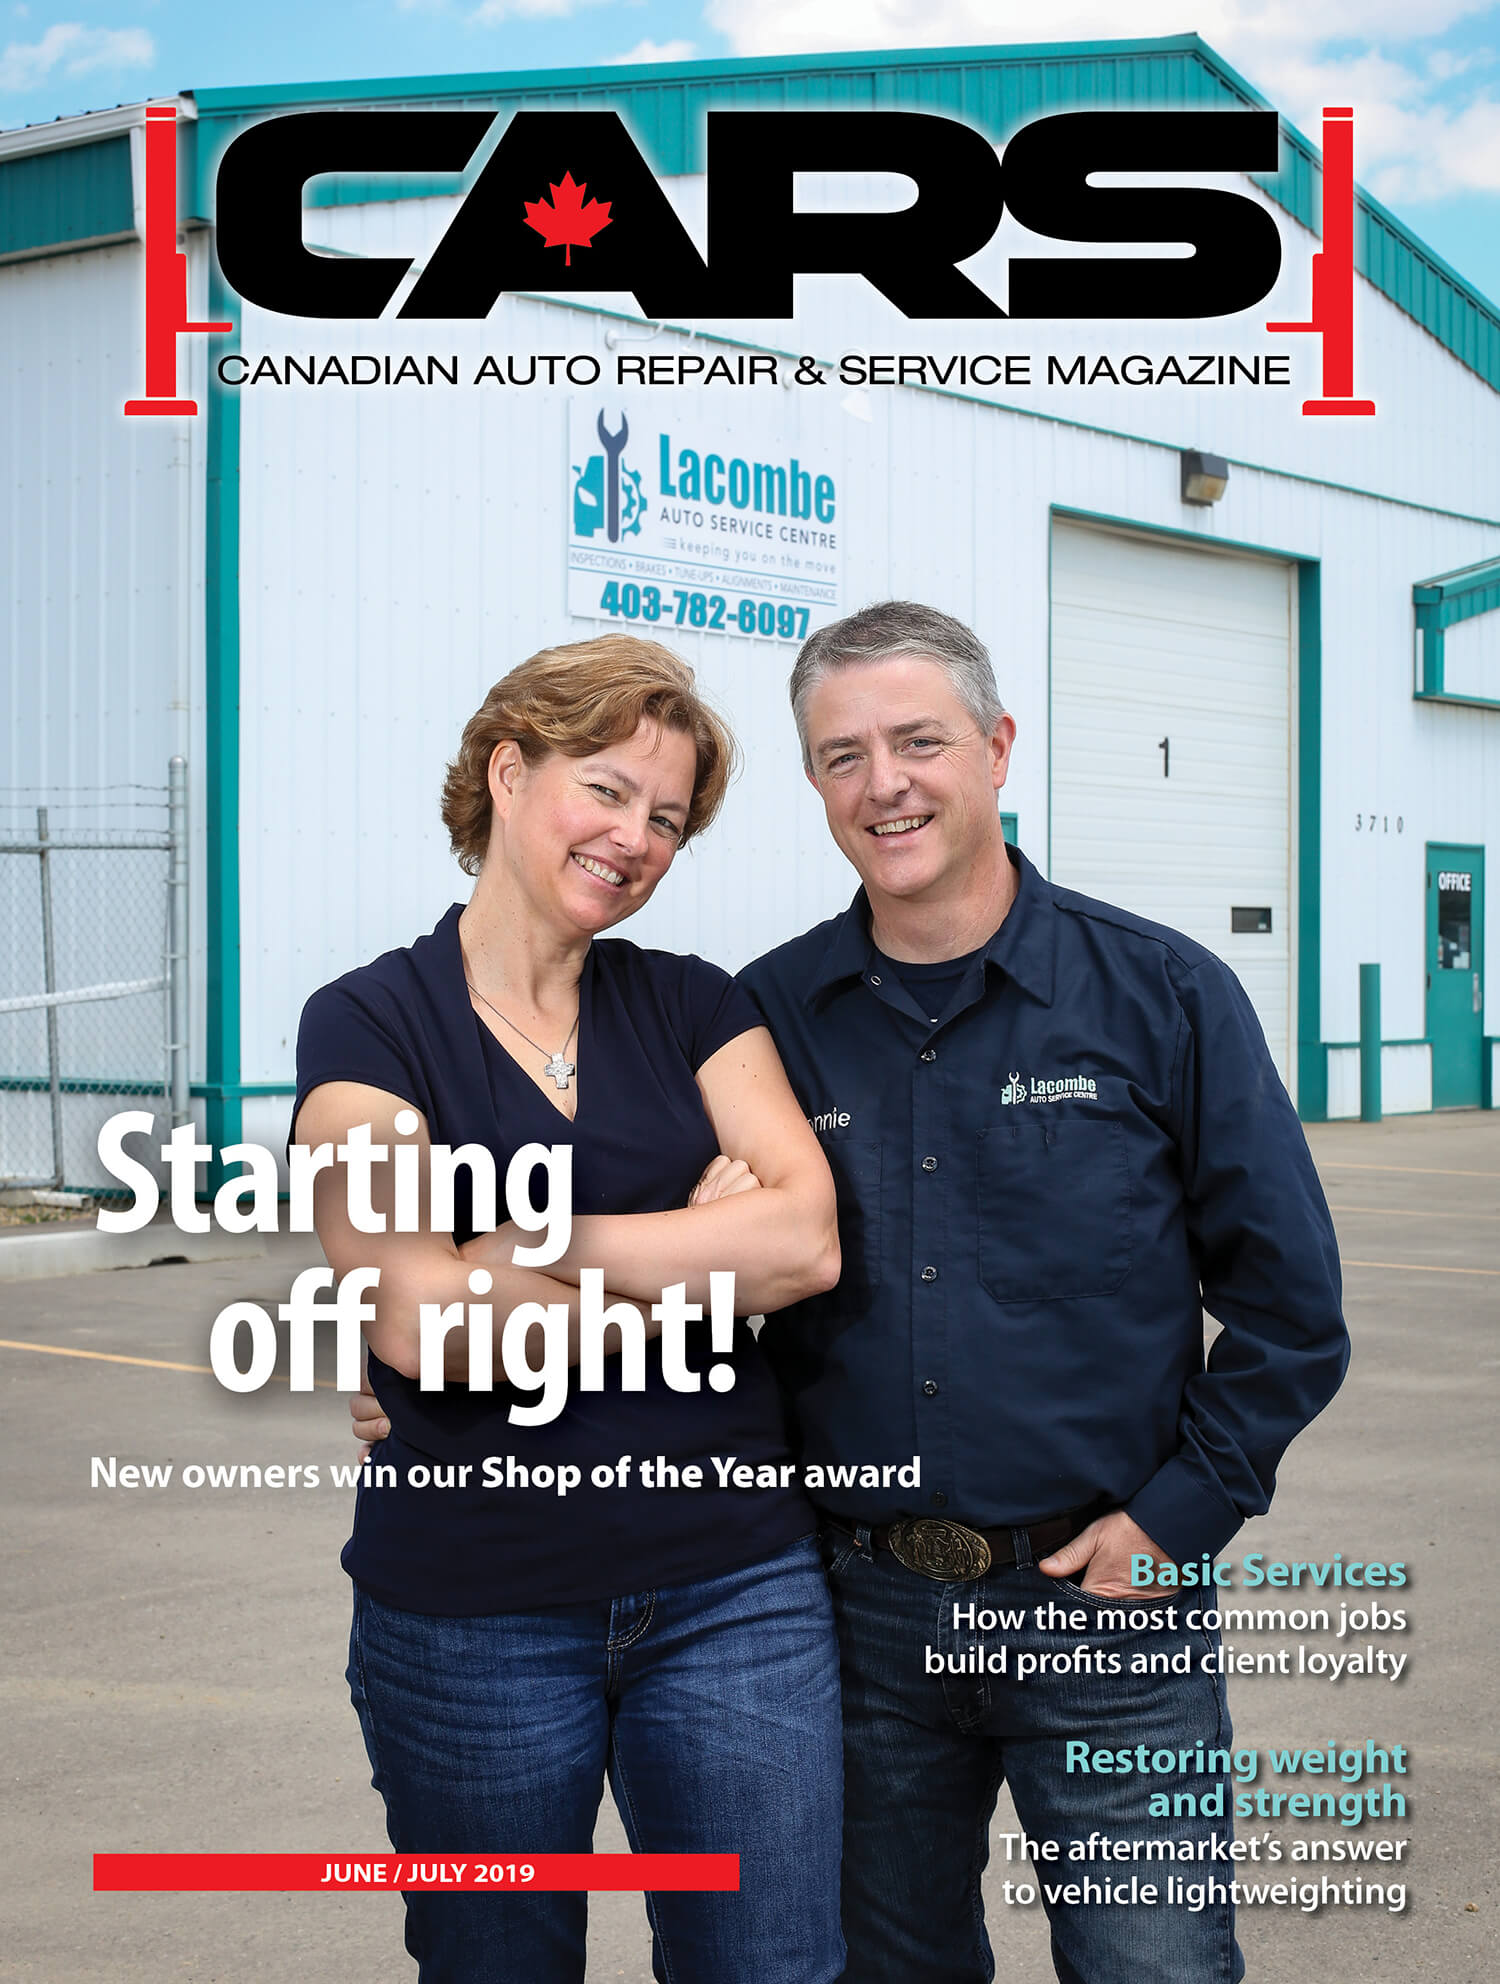 How AutoServe1 Helped Lacombe Win 2019 CARS Magazine Shop of the Year